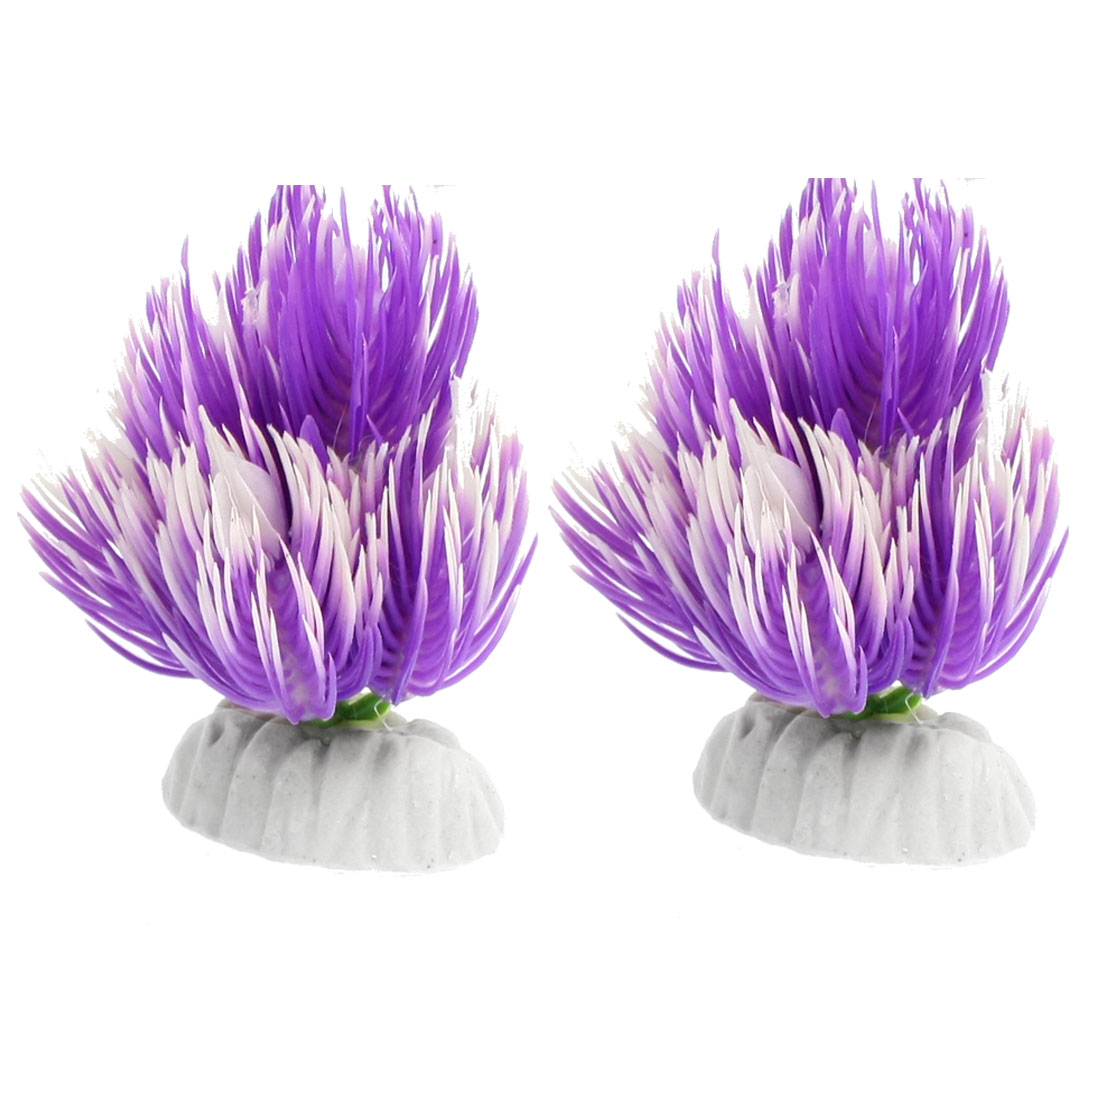 "3.5"" Height Purple White Fish Tank Ornament Decoration Plant 2 Pcs"